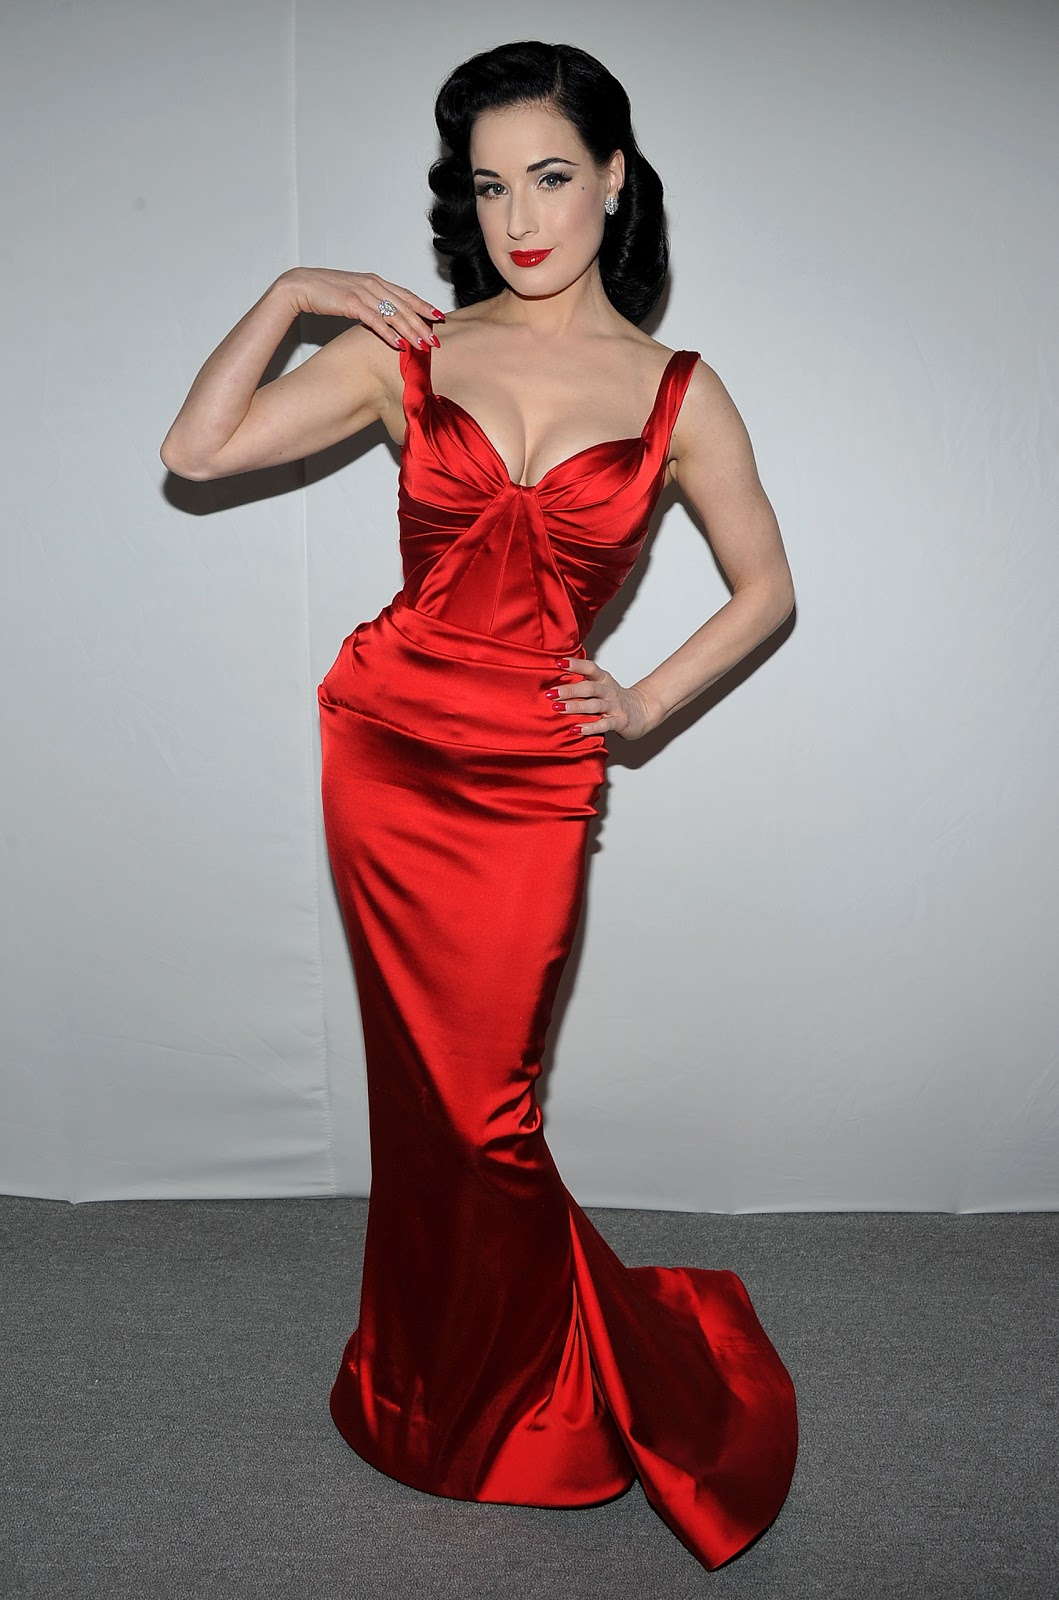 http://2.bp.blogspot.com/-s_SzftRQahA/TVcYoND0ILI/AAAAAAAABpo/AXBexsFtxbg/s1600/FSG7B2CTUF_New_folder_22272-dita-von-teese-heart-truths-red-dress-collec.jpg